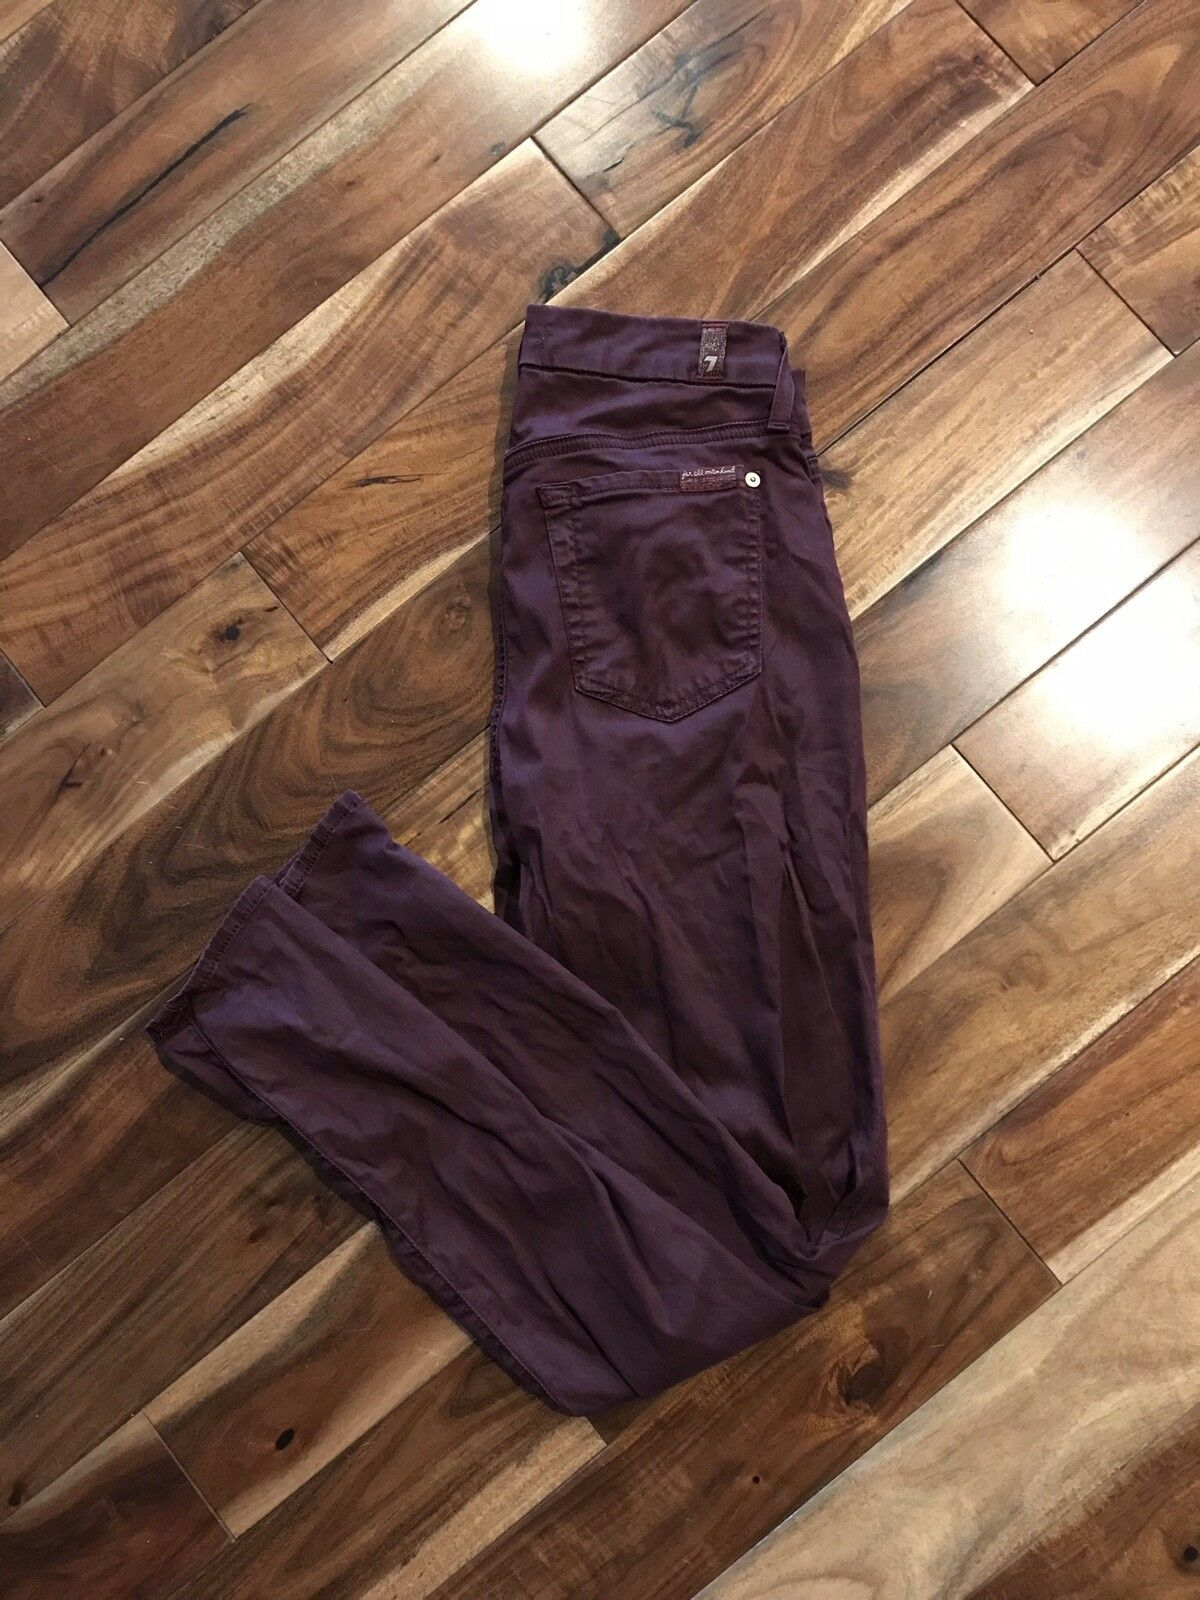 7 For All Mankind B(air) 25 Burgundy Wine Ankle Jeans Lightly Used